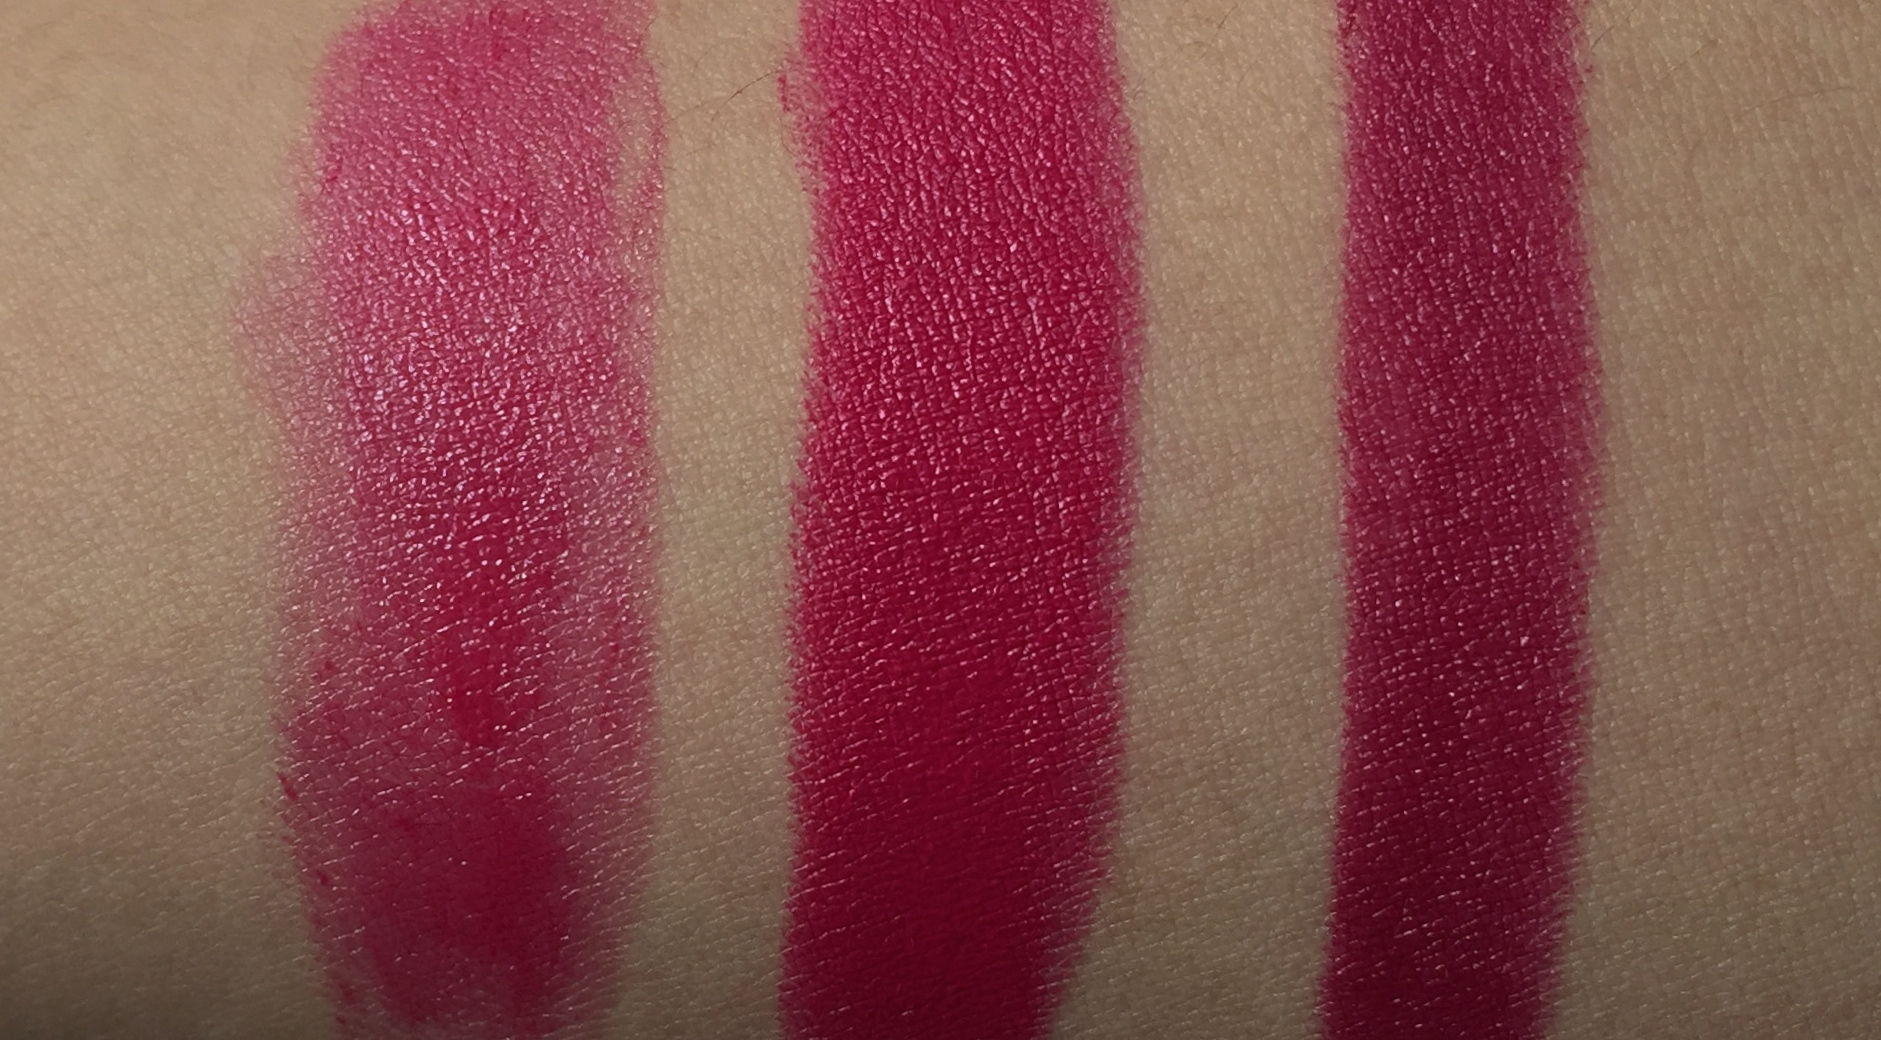 Bobbi Brown Nourishing Lip Color Bright Raspberry swatched ...